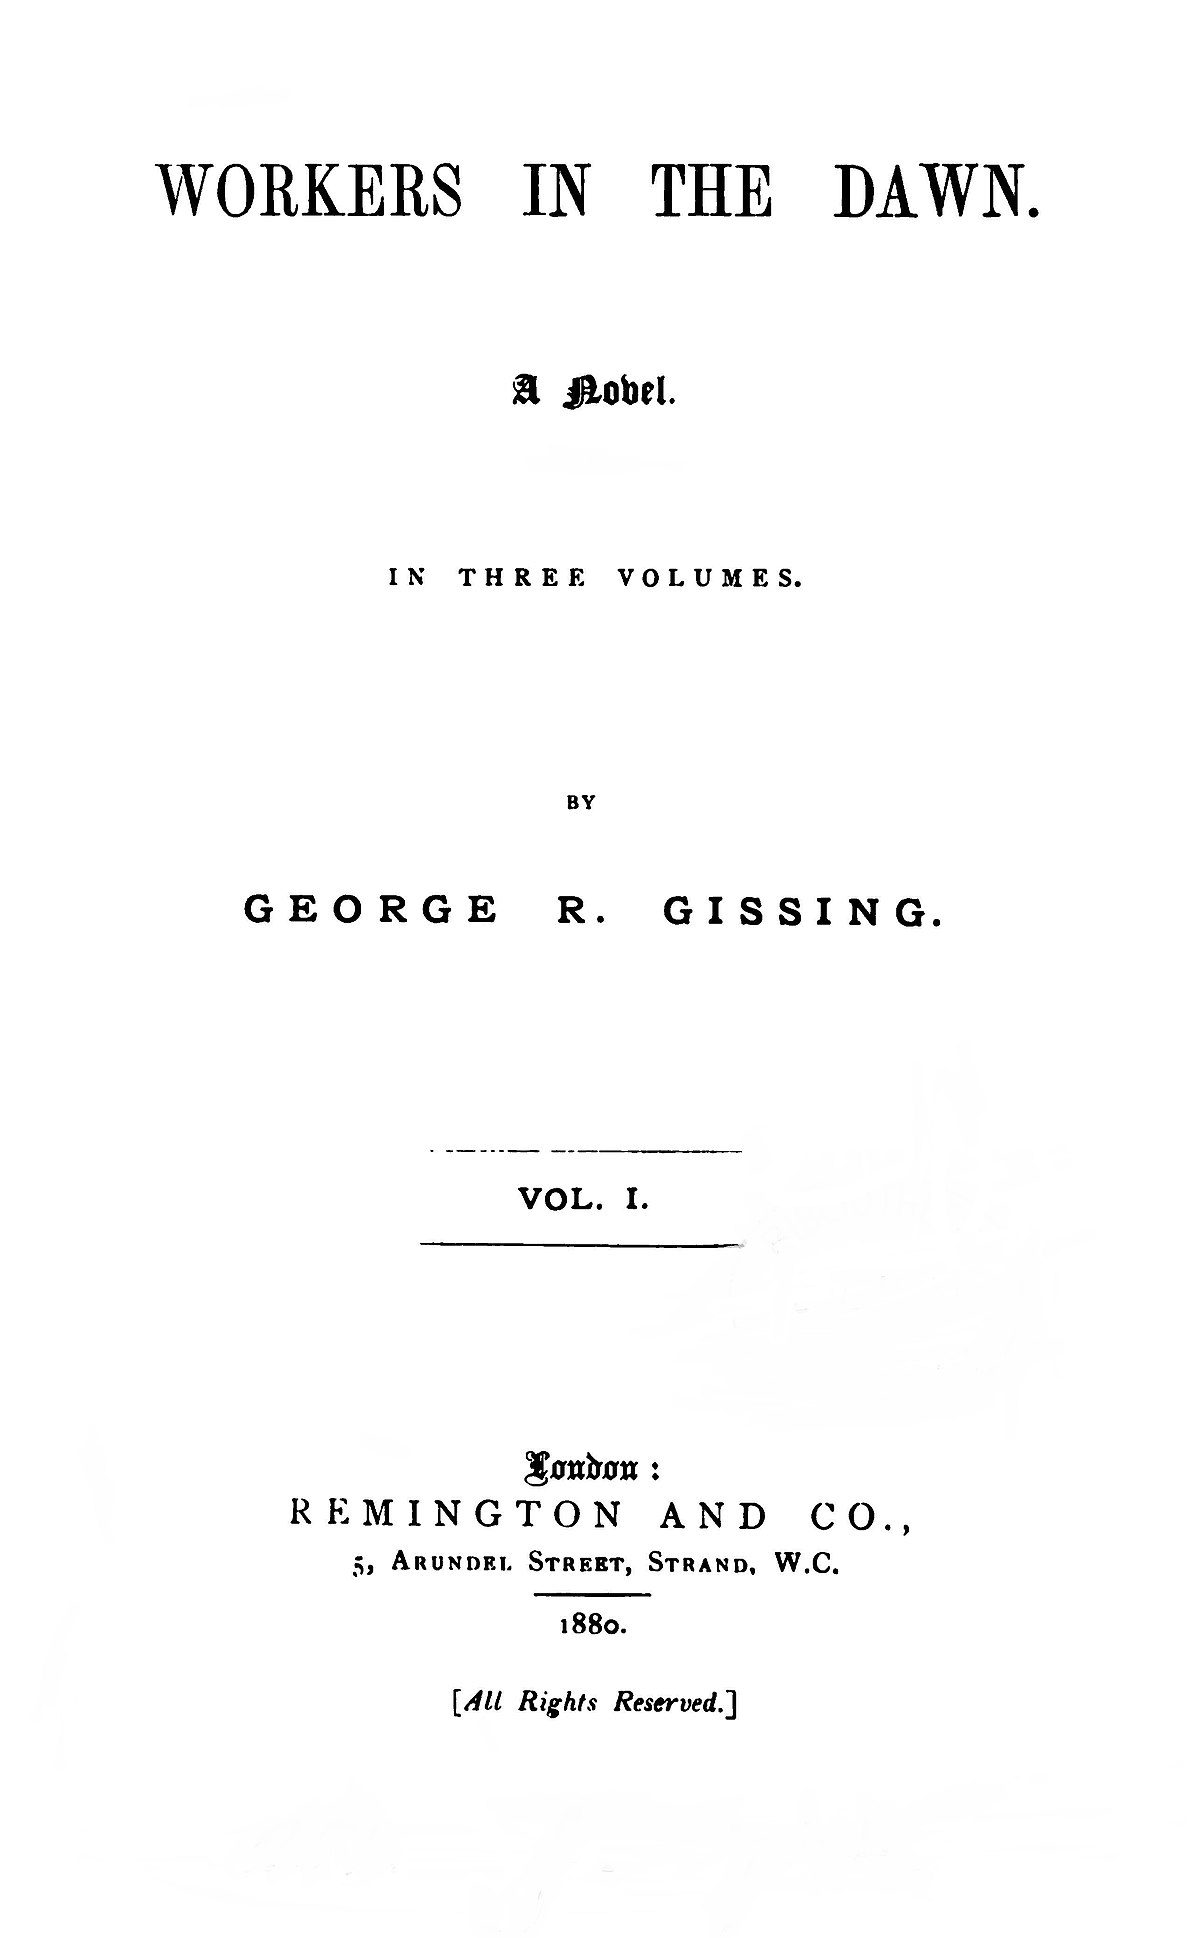 George Gissing: A Critical Study by Frank Swinnerton, 1923 ...